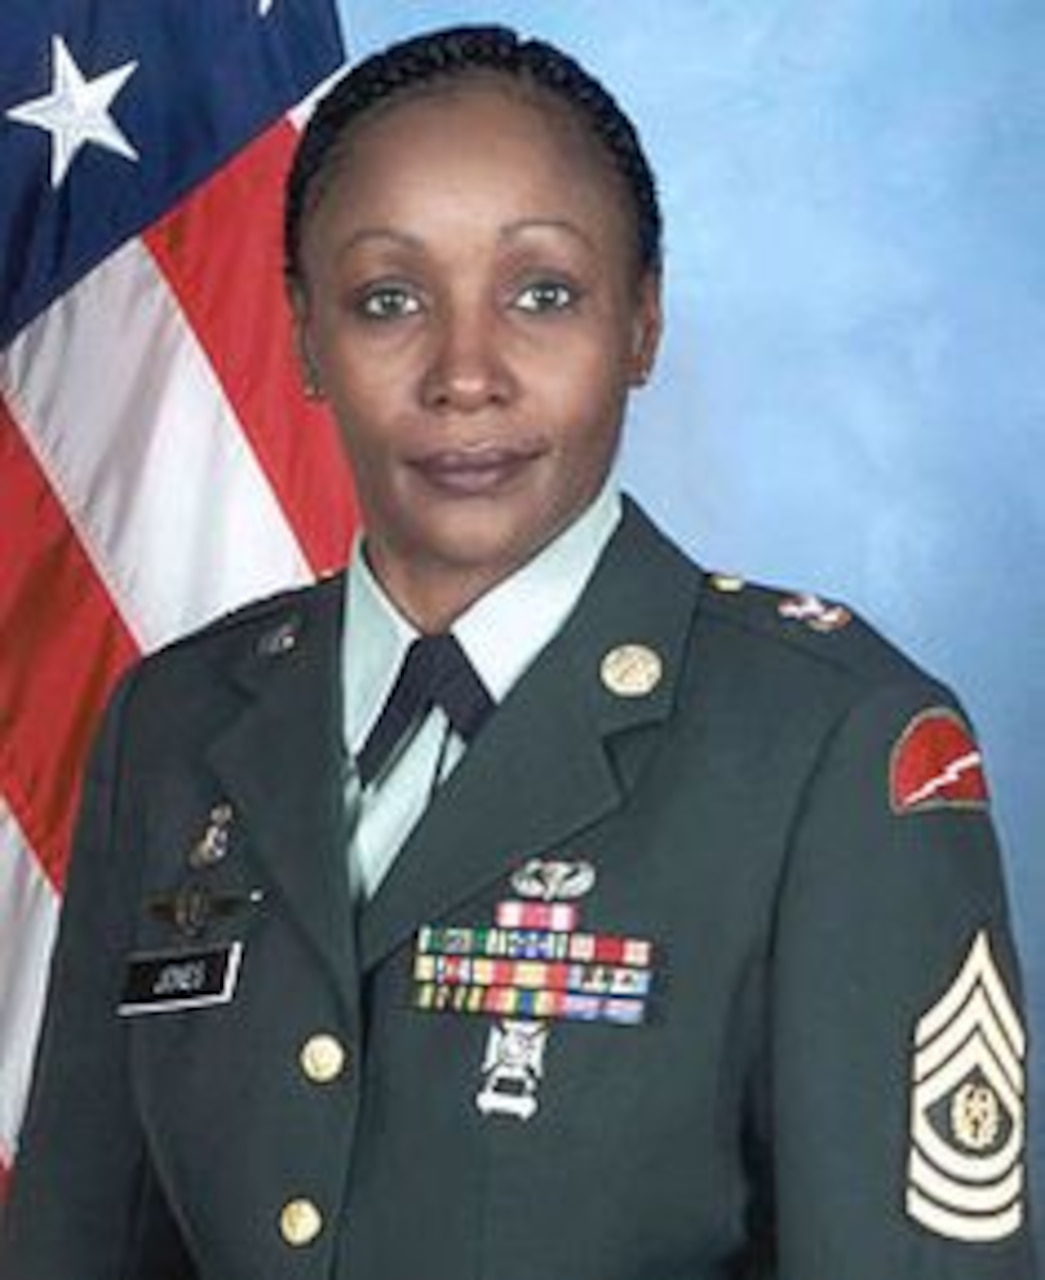 Sgt. Maj. Michele S. Jones was appointed command sergeant major of the Army Reserve in September 2003. She was the first woman to serve as the senior NCO in any of the Army's components. Courtesy photo